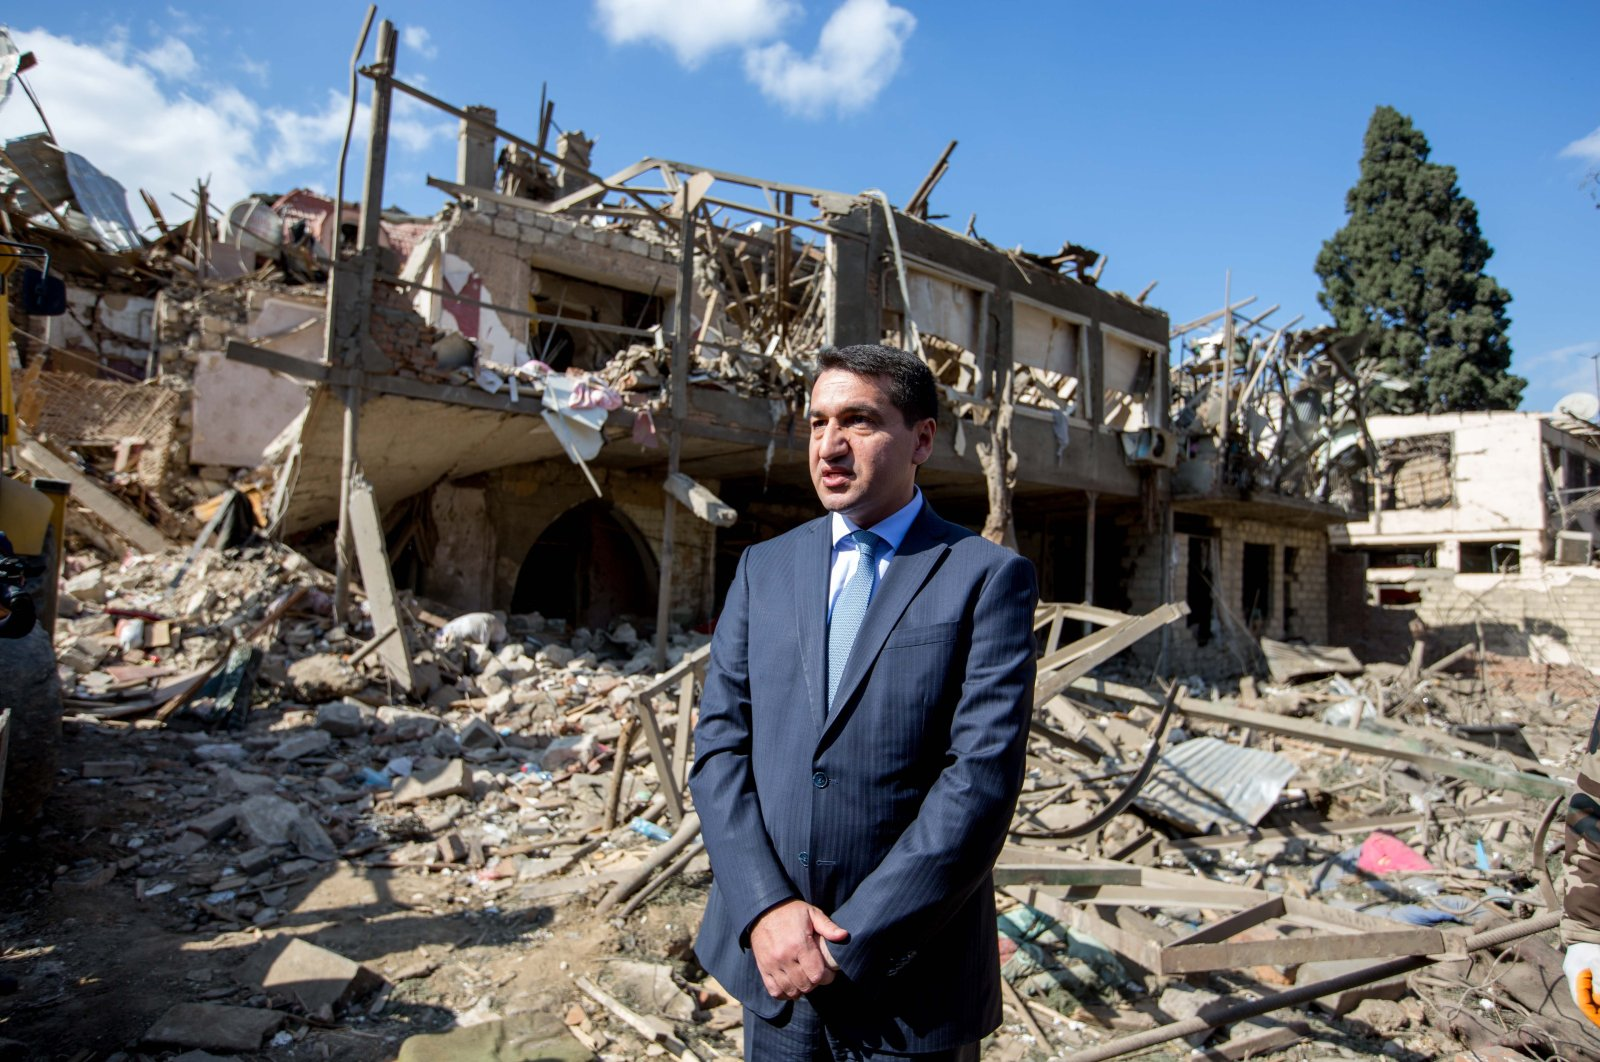 Azerbaijani Presidential aide Hikmet Hajiyev stands in front of a building destroyed in Armenian shelling in the city of Ganja, Azerbaijan on Oct. 13, 2020. (Sabah Photo)